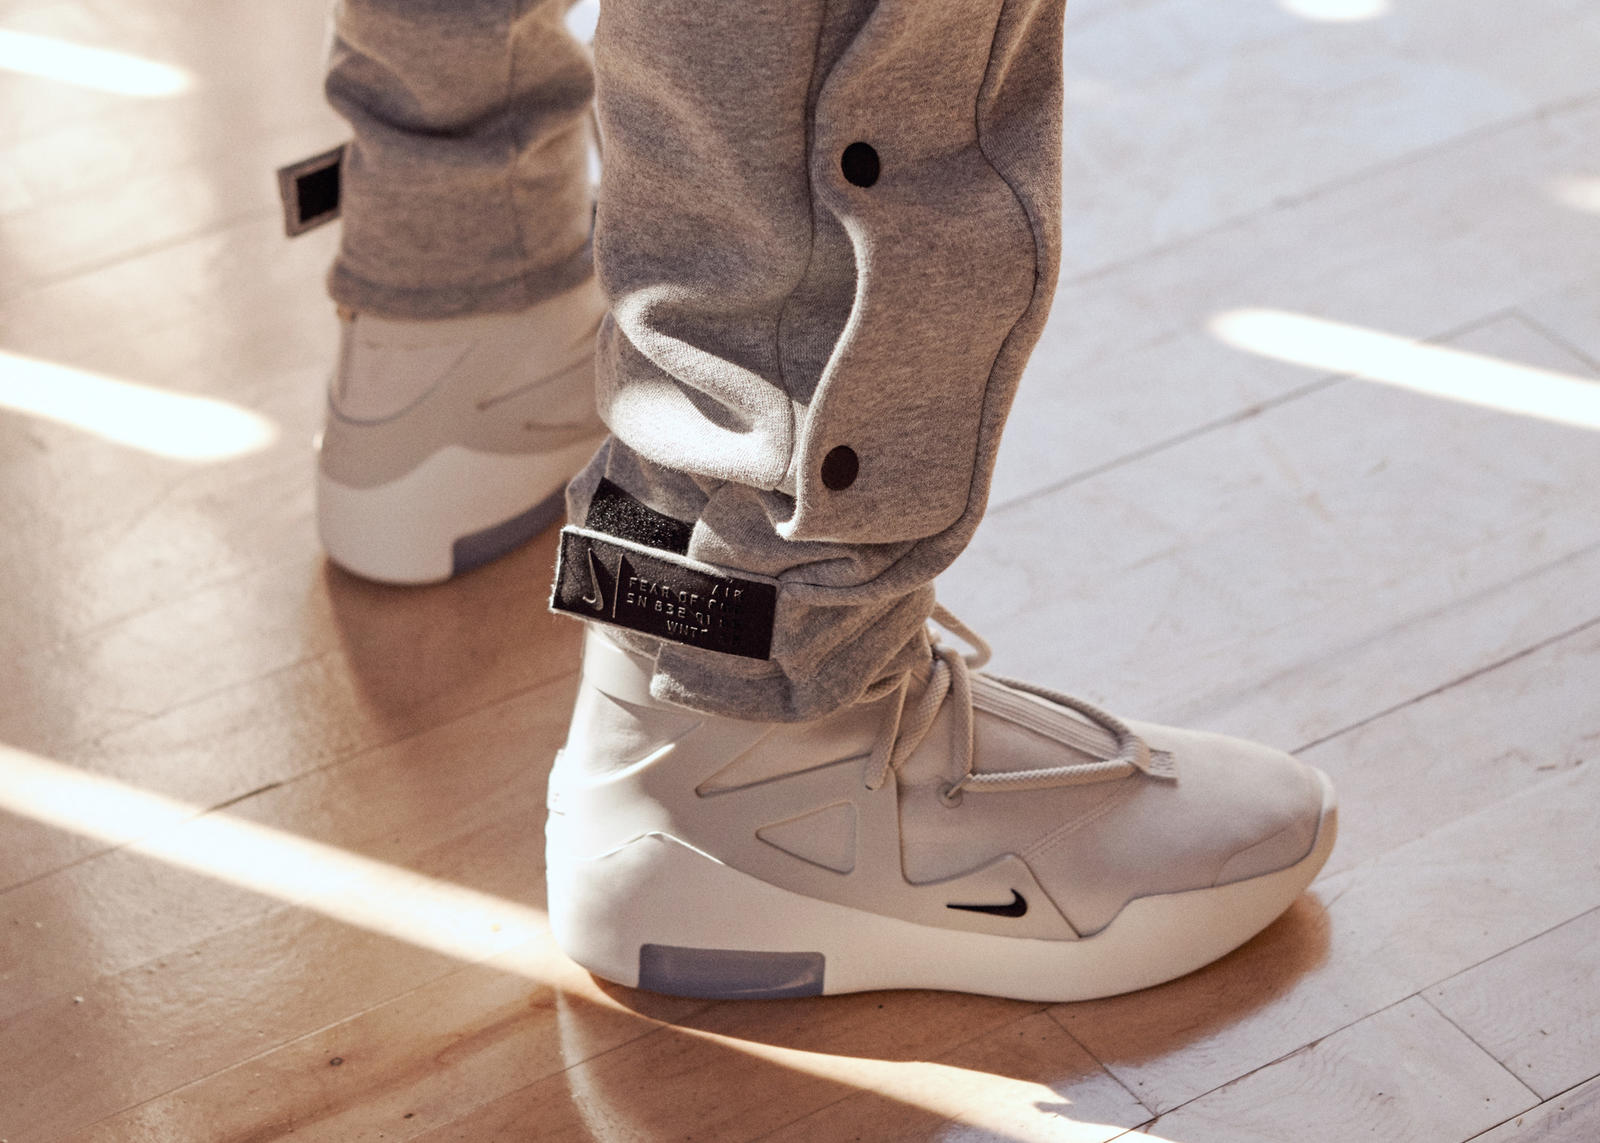 Nike Air X Fear Of God Raid Elegant And Sturdy Package Kleidung & Accessoires Sneaker